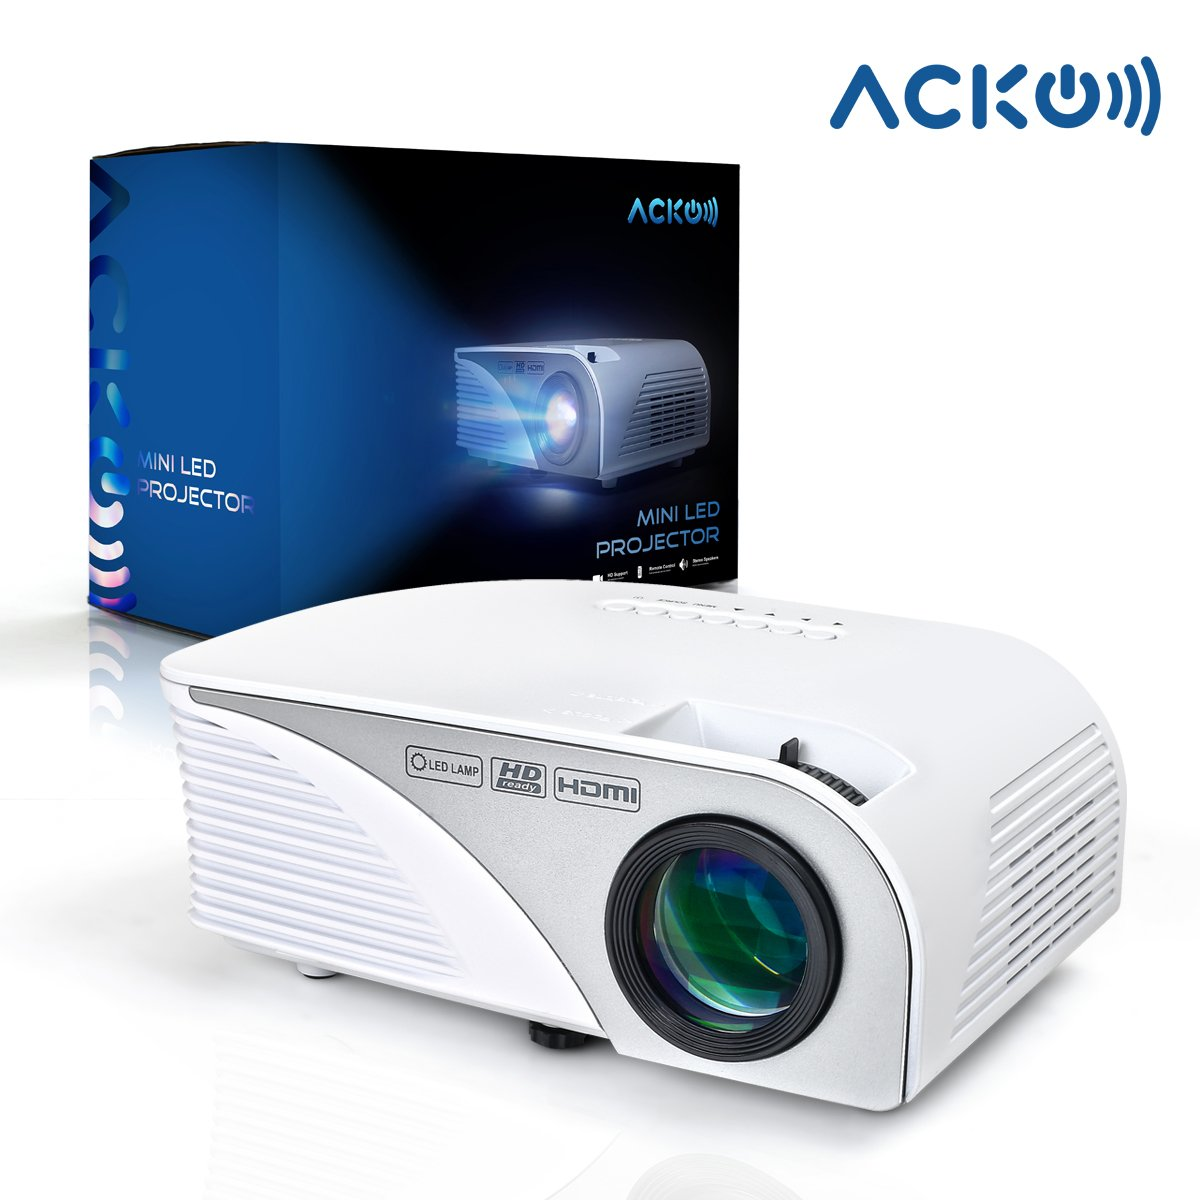 Acko Portable Mini HD LED Video Projector Office Home Theater 1200 LM Multimedia Outdoor 20''-150'' HDMI VGA USB AV SD Audio 1080P Smart Phone Tablet PC Computers Laptops White Warranty Included by EpandaHouse